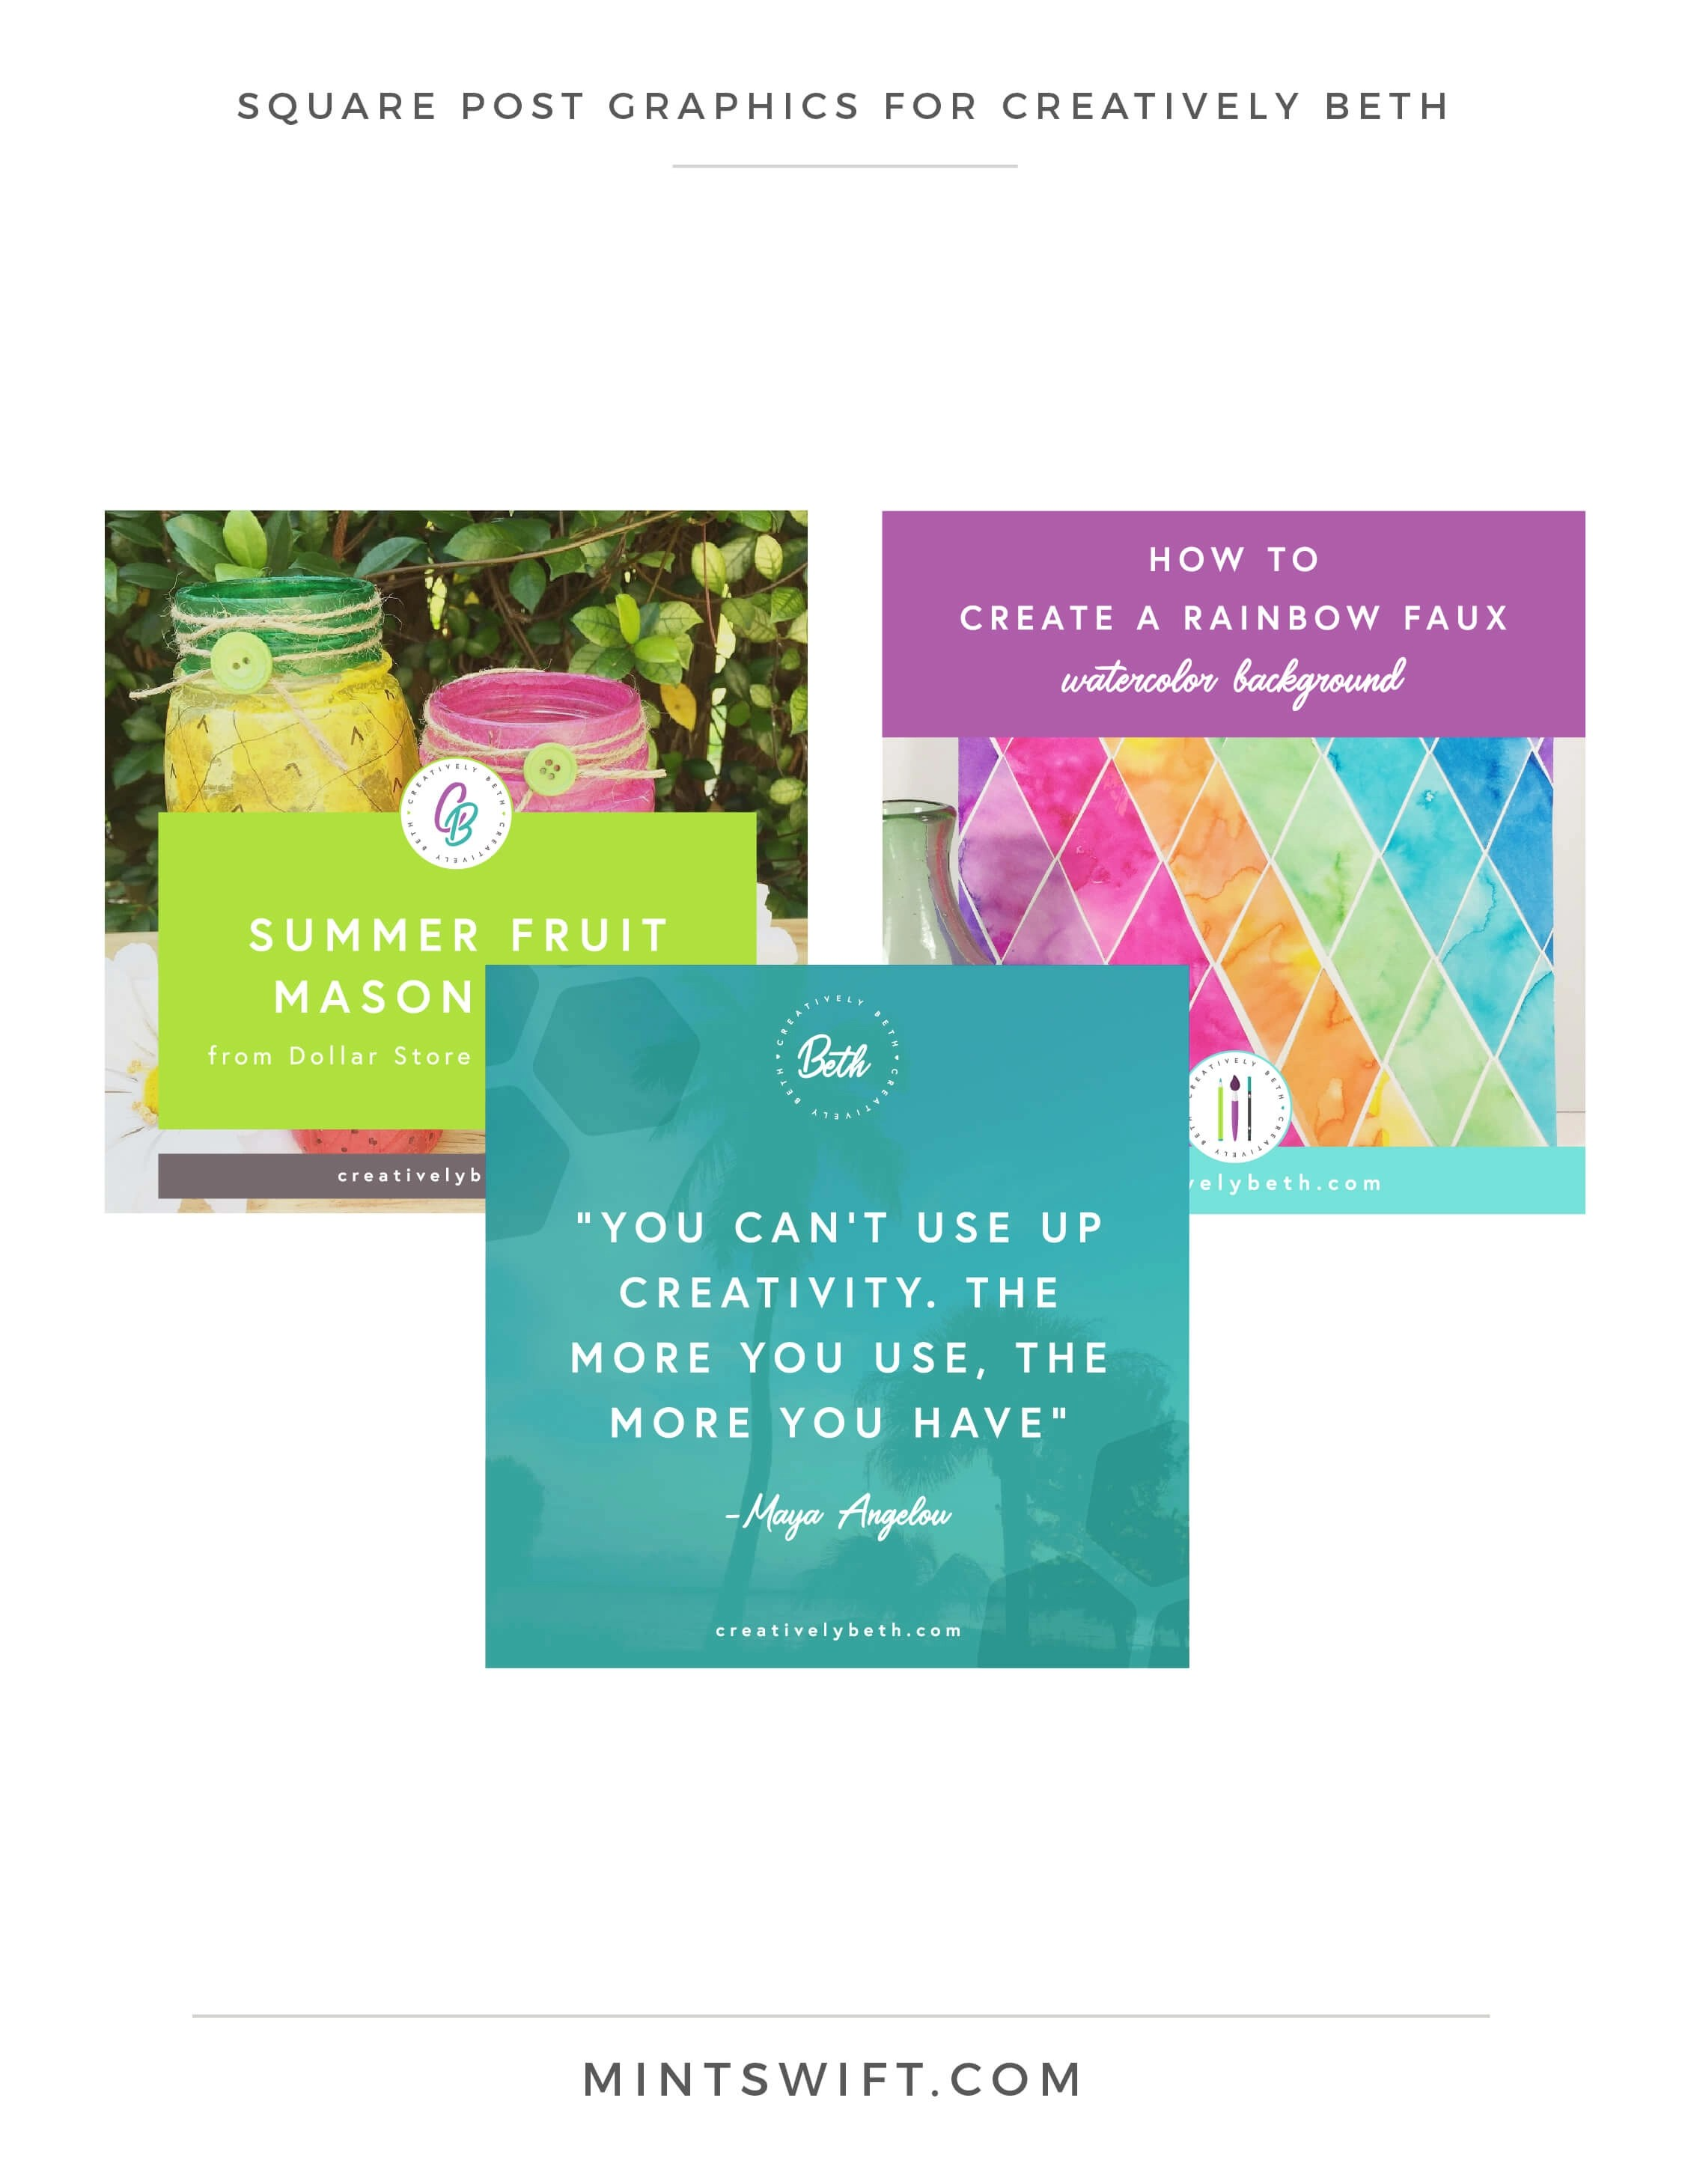 Creatively Beth - Square post graphics - Brand & Website Design - MintSwift